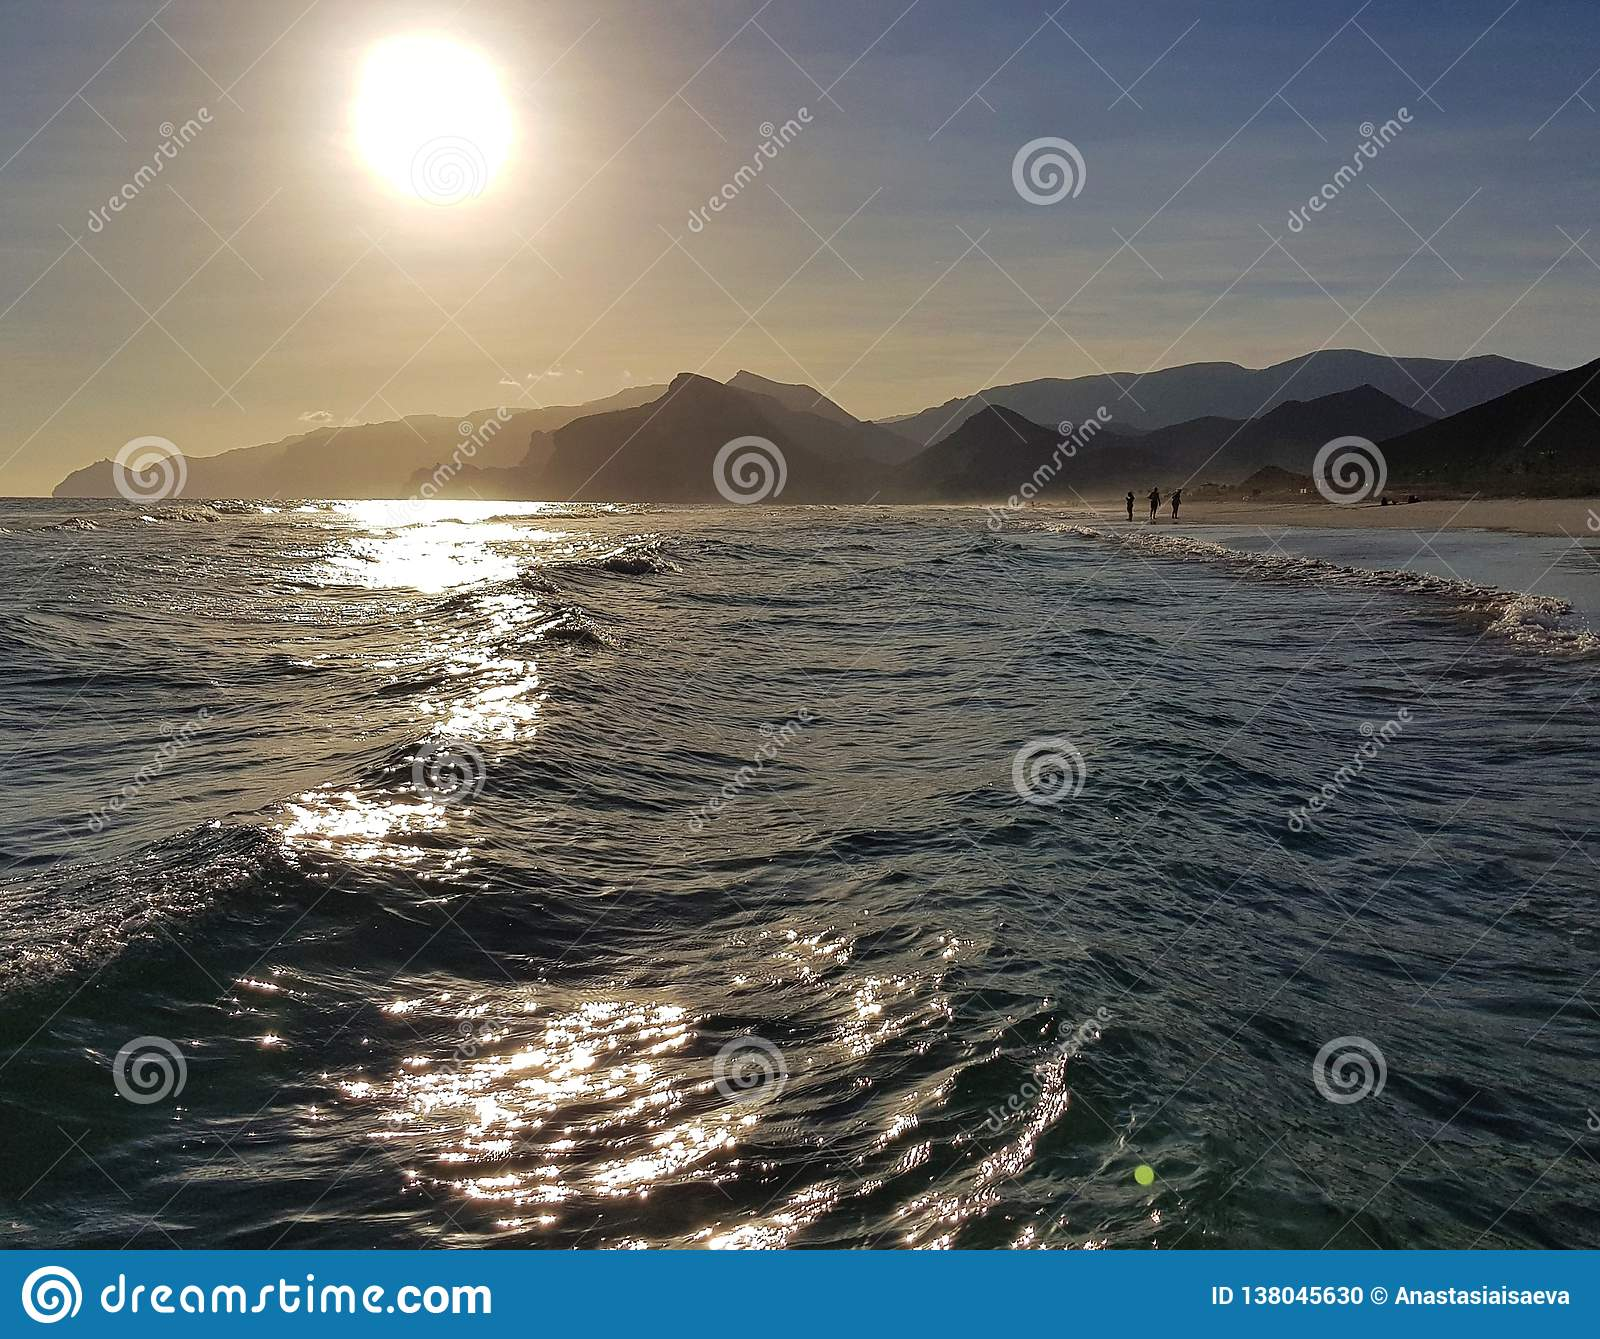 Restless sea waves with sunlight reflections and mountains